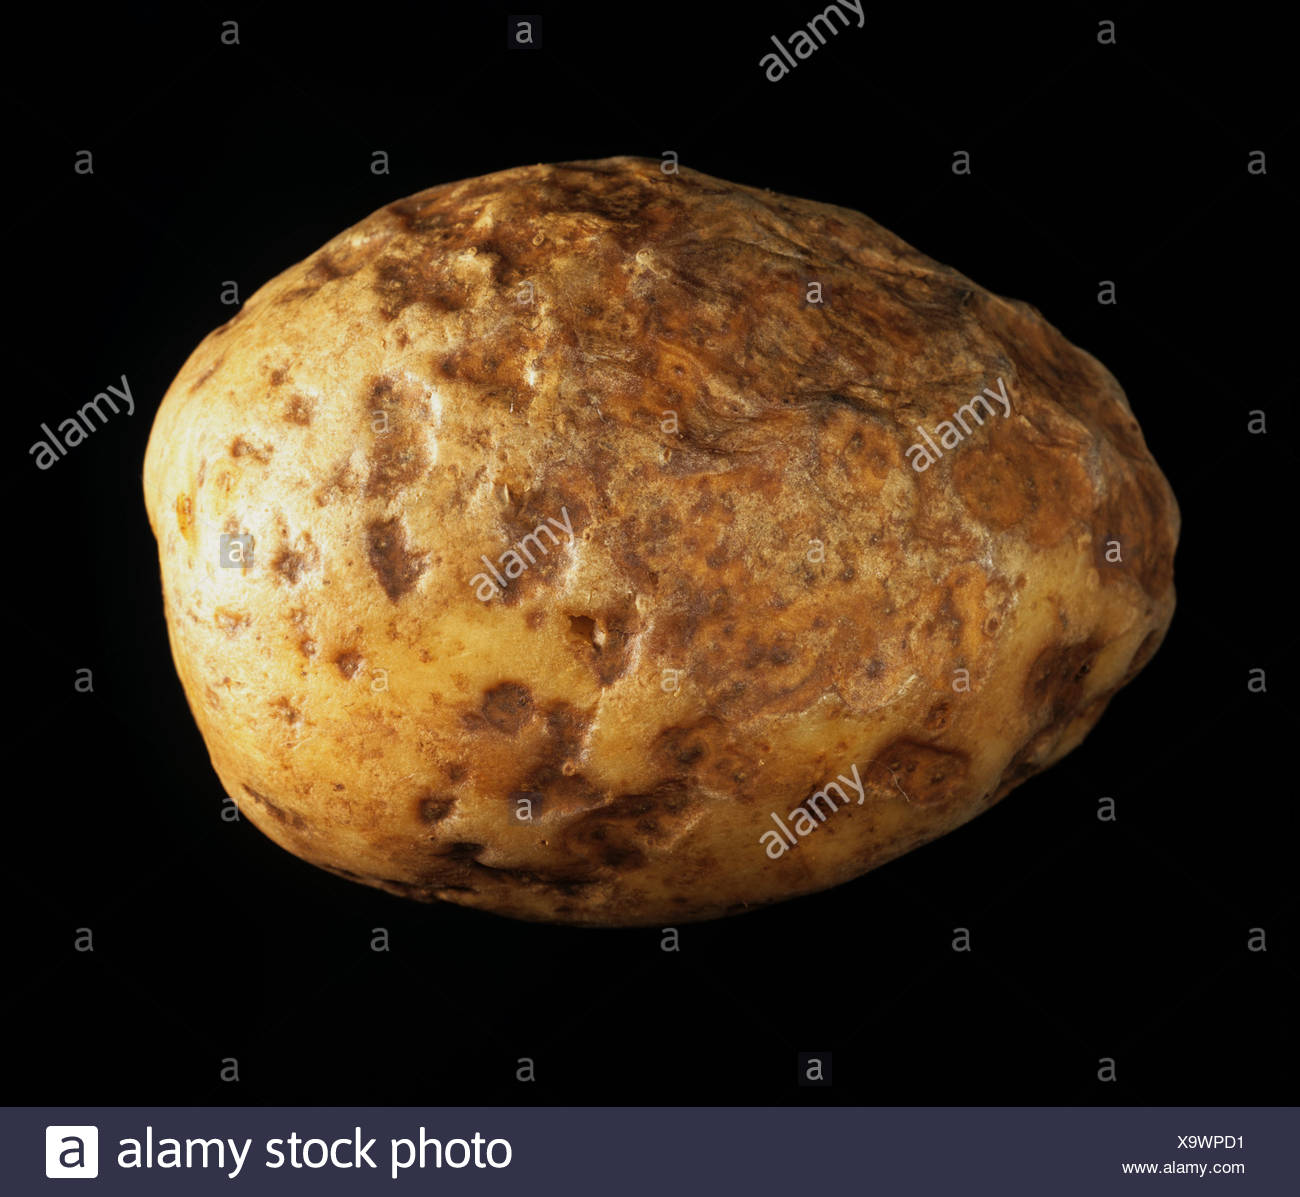 Pit rot, a bacterial invasion associated with Erwinia carotovora on a potato tuber in store - Stock Image